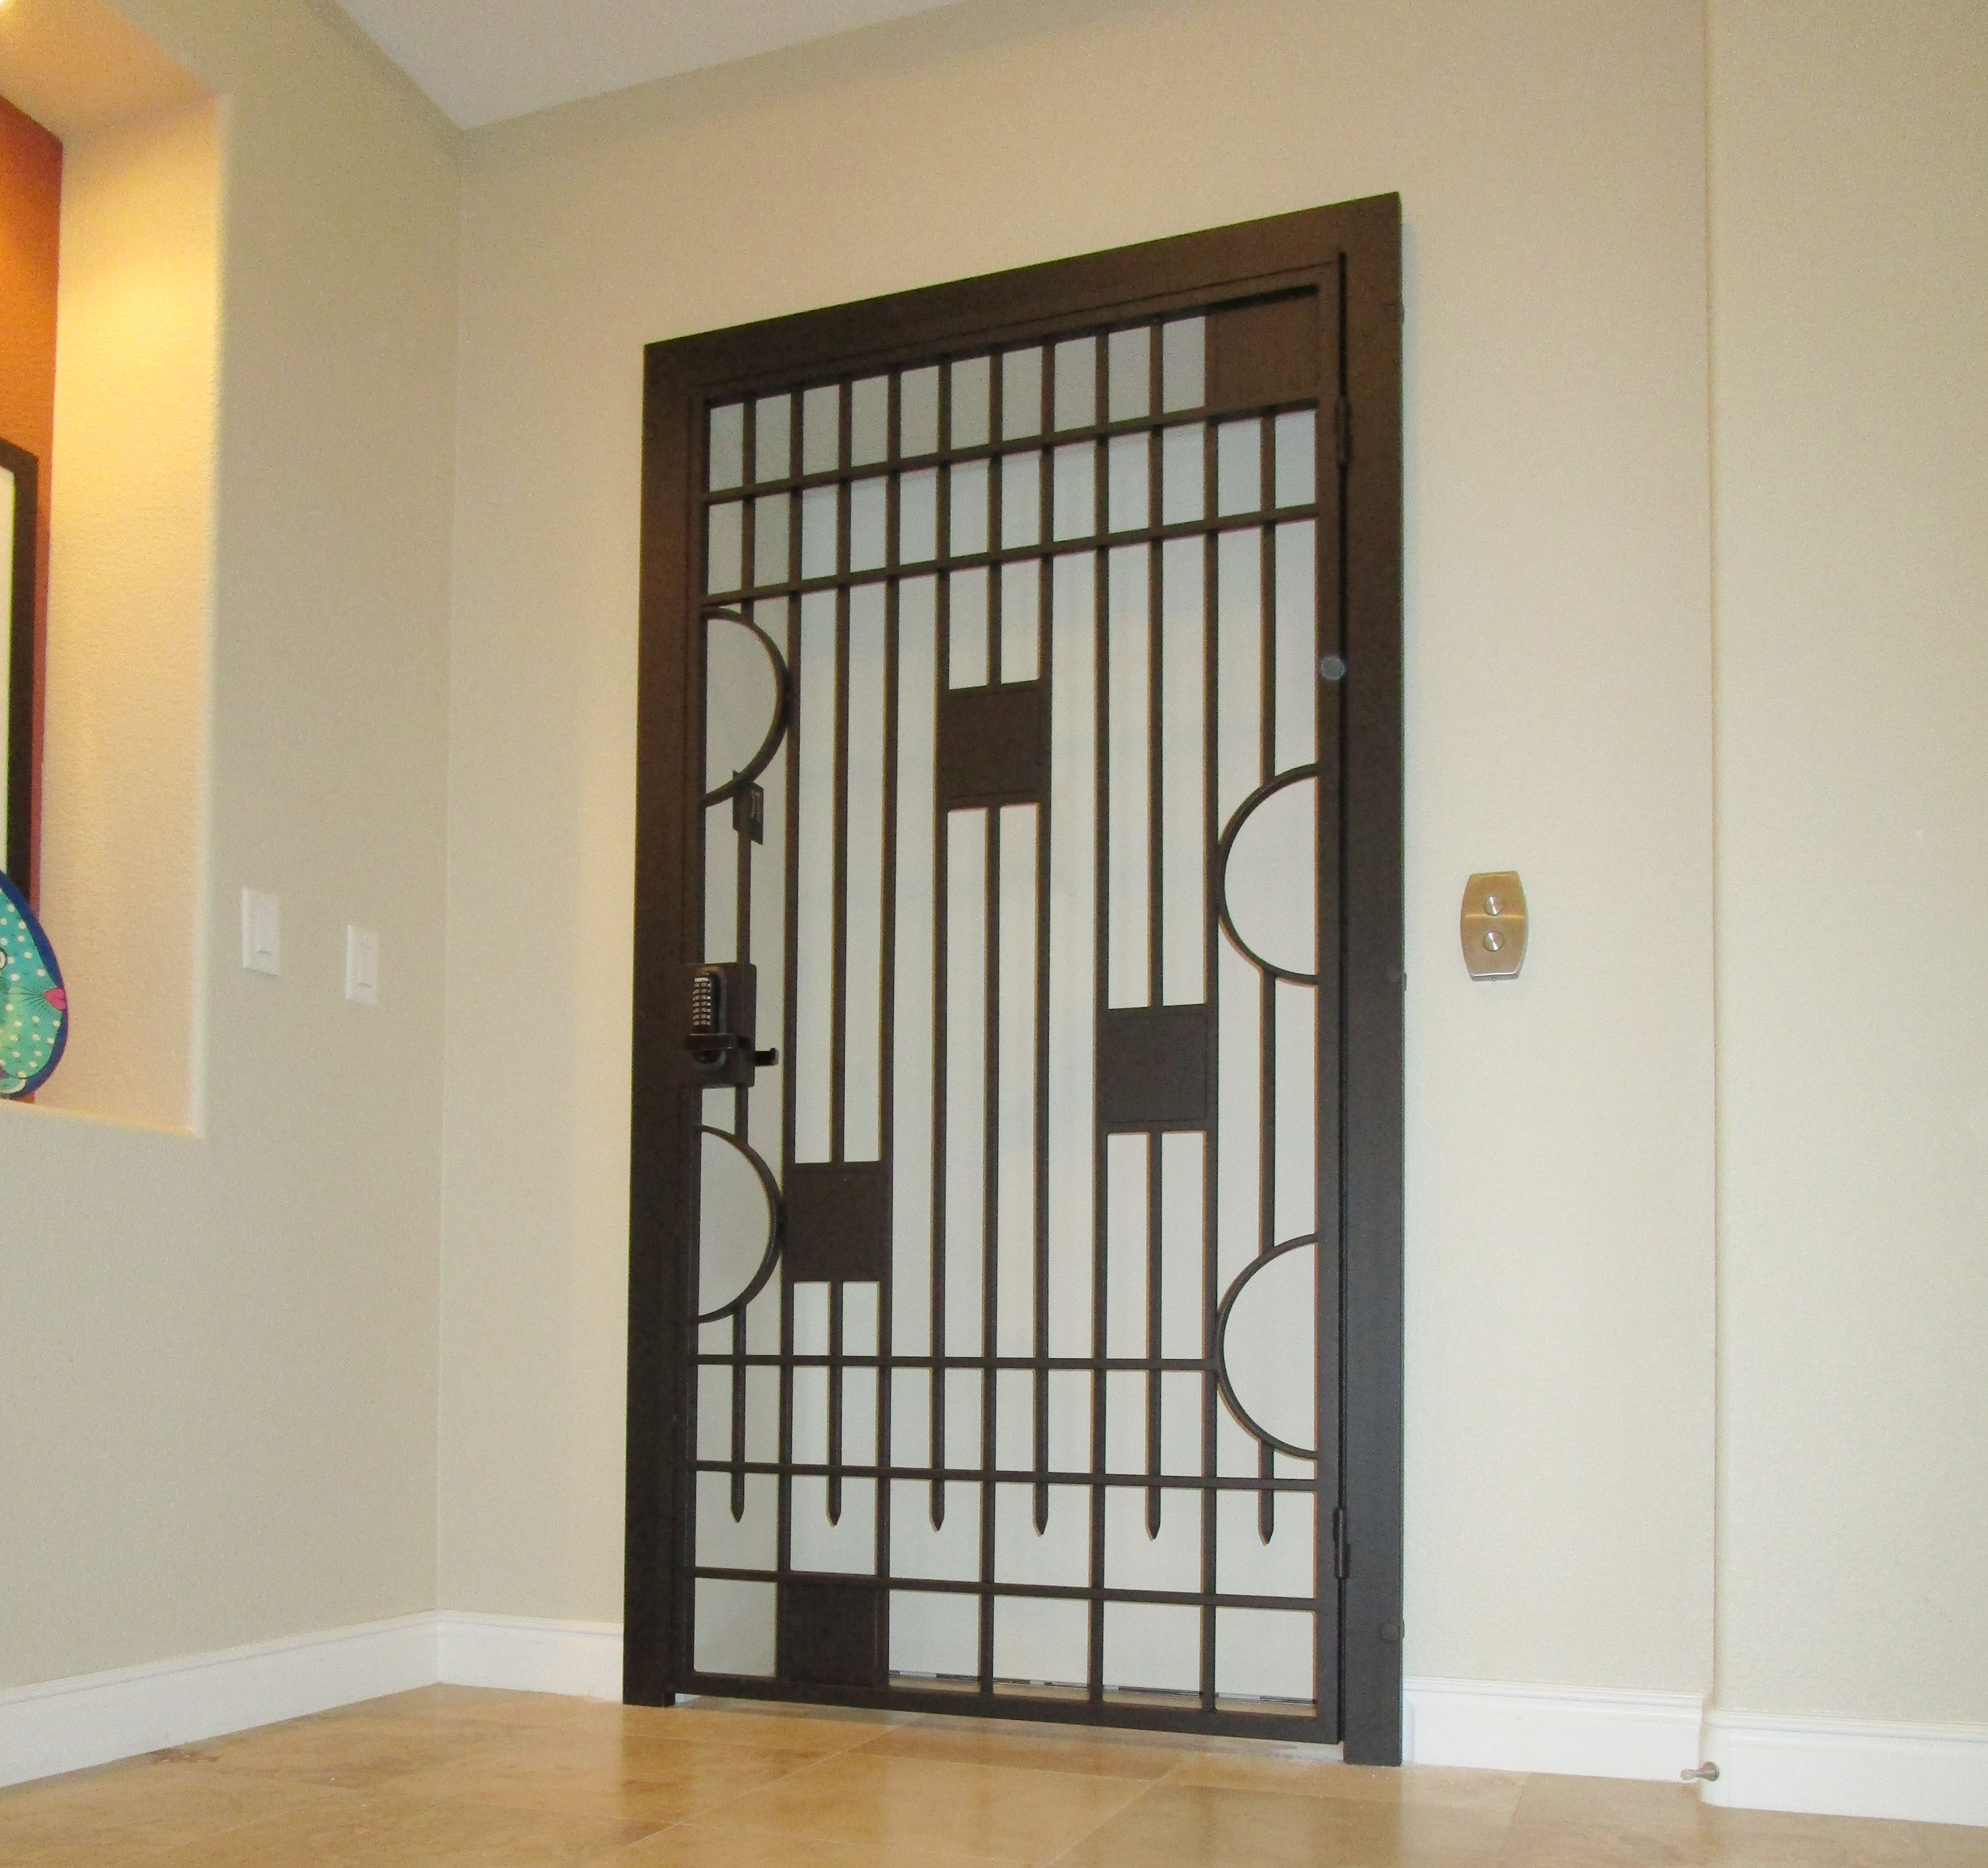 security bars pinterest door pin gates interior interiors